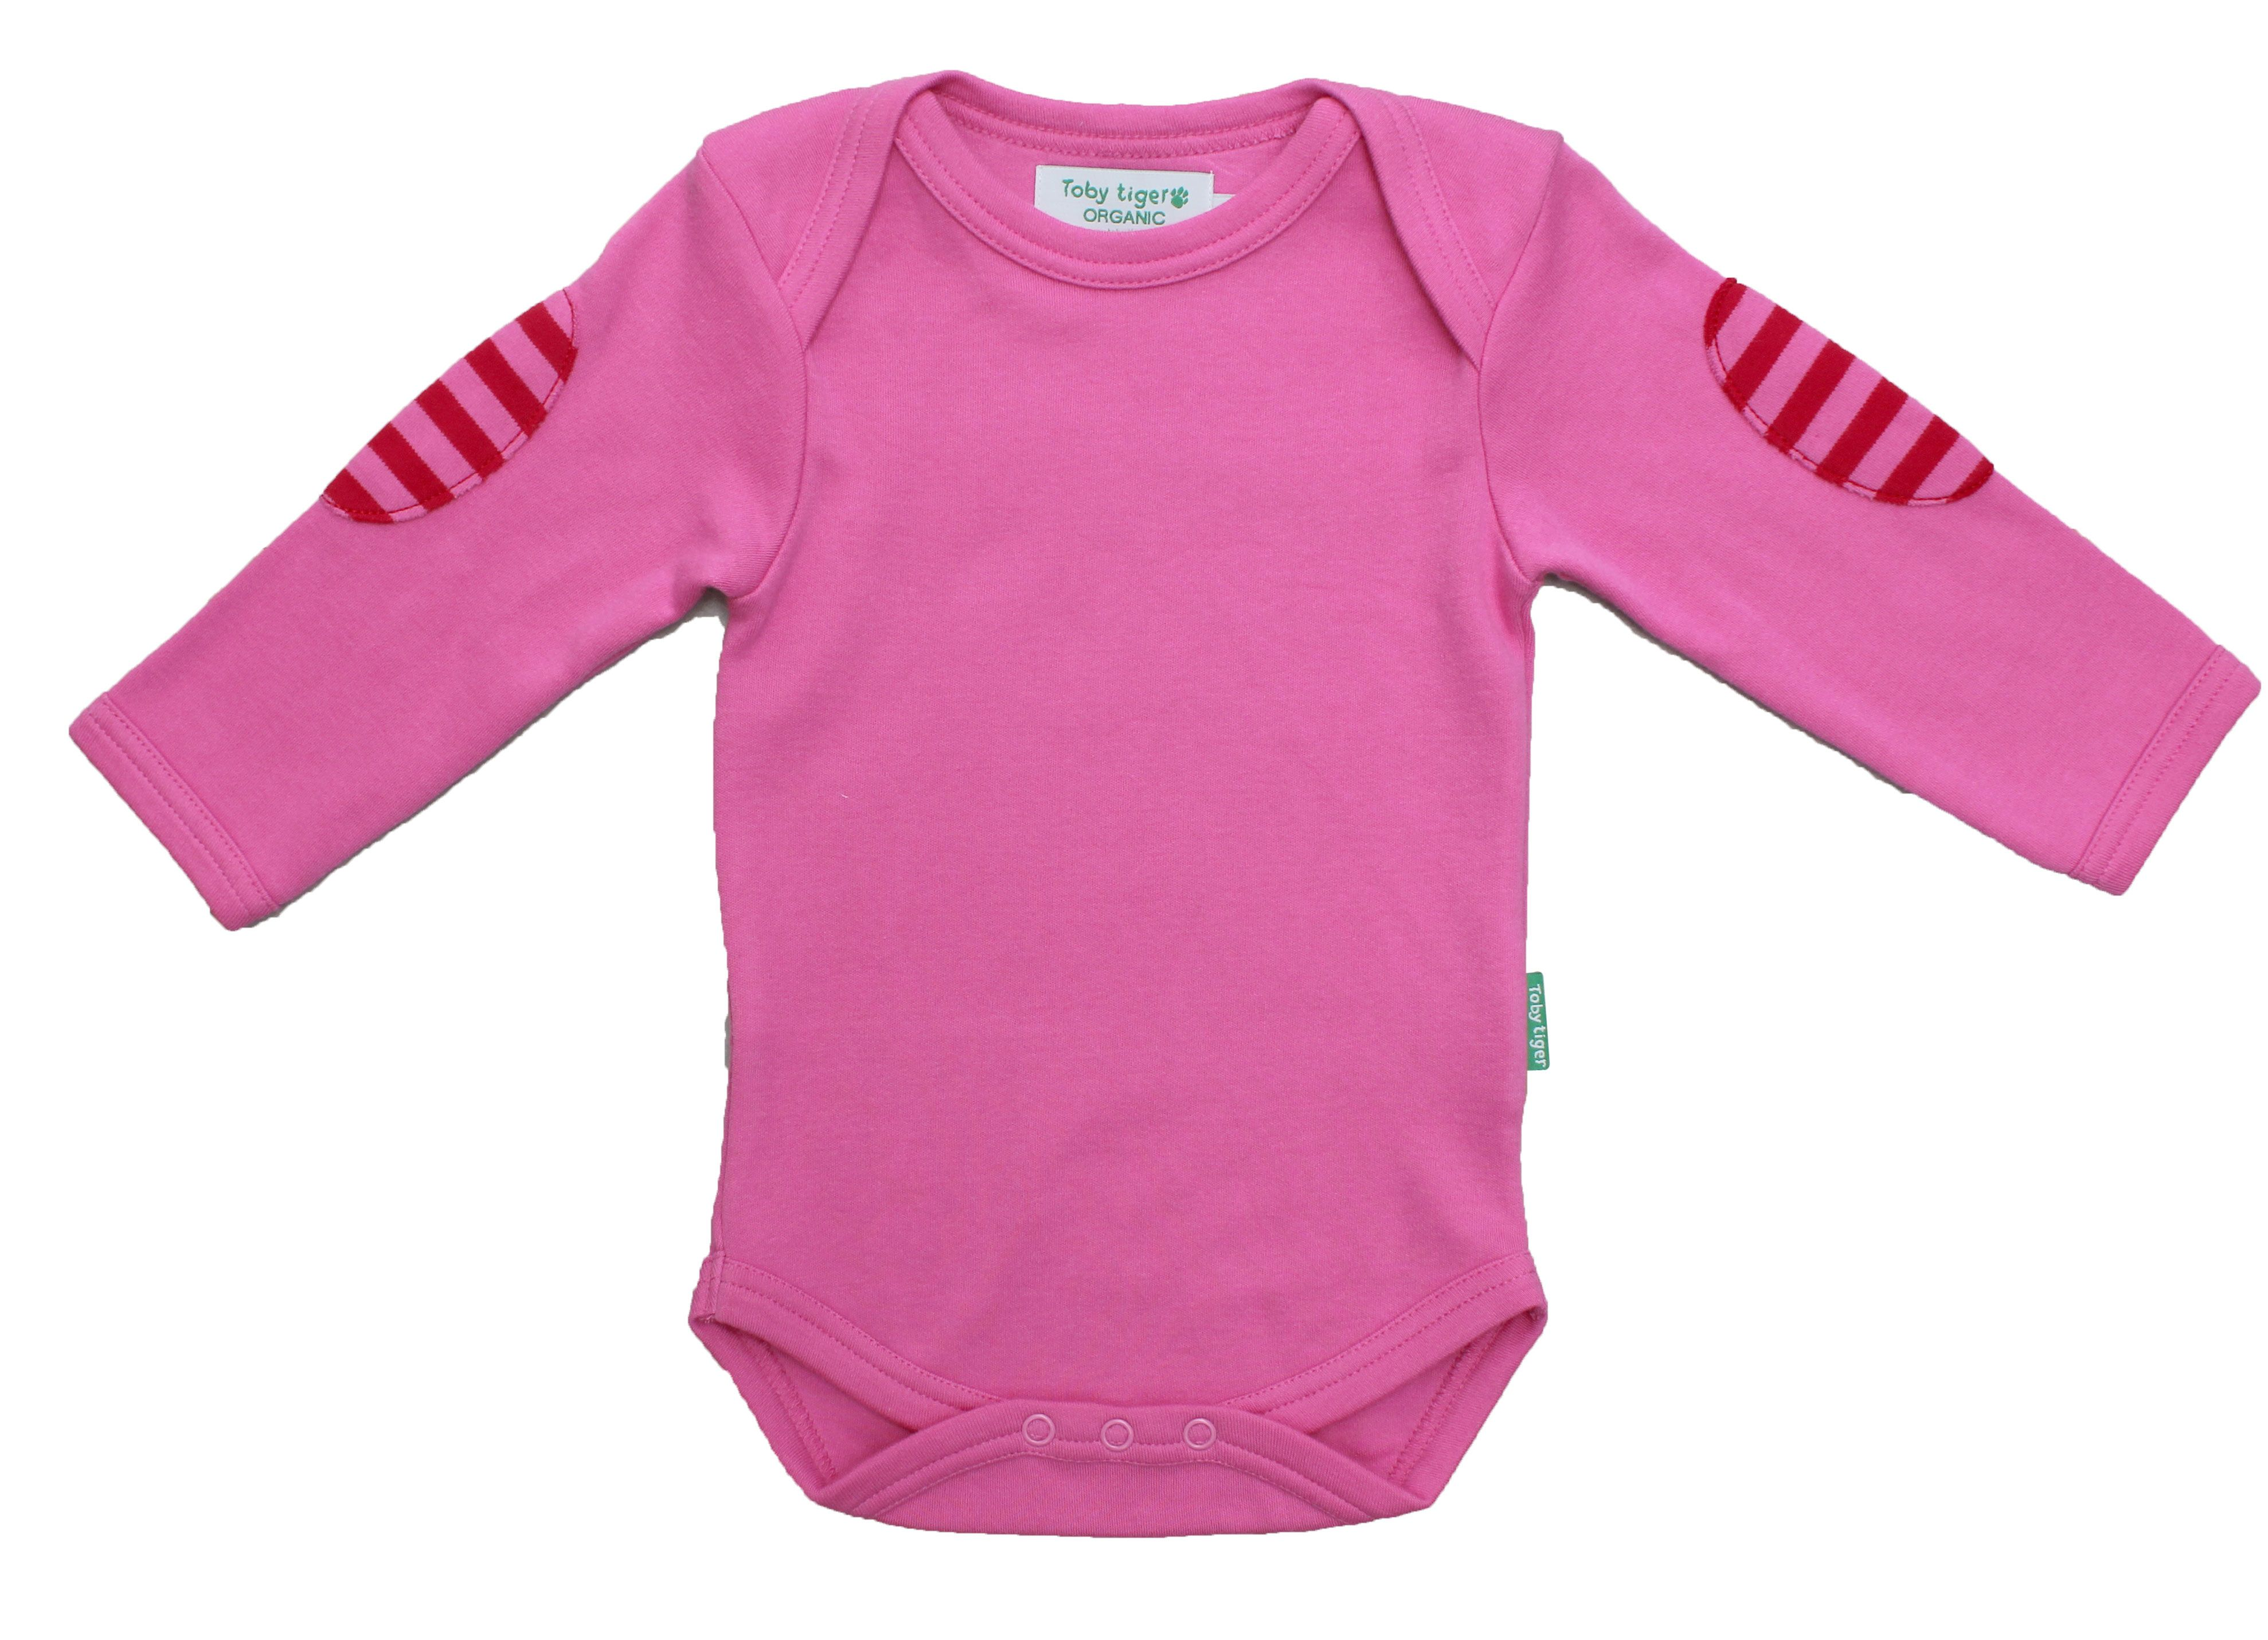 Baby`s organic cotton t-shirt pack pink